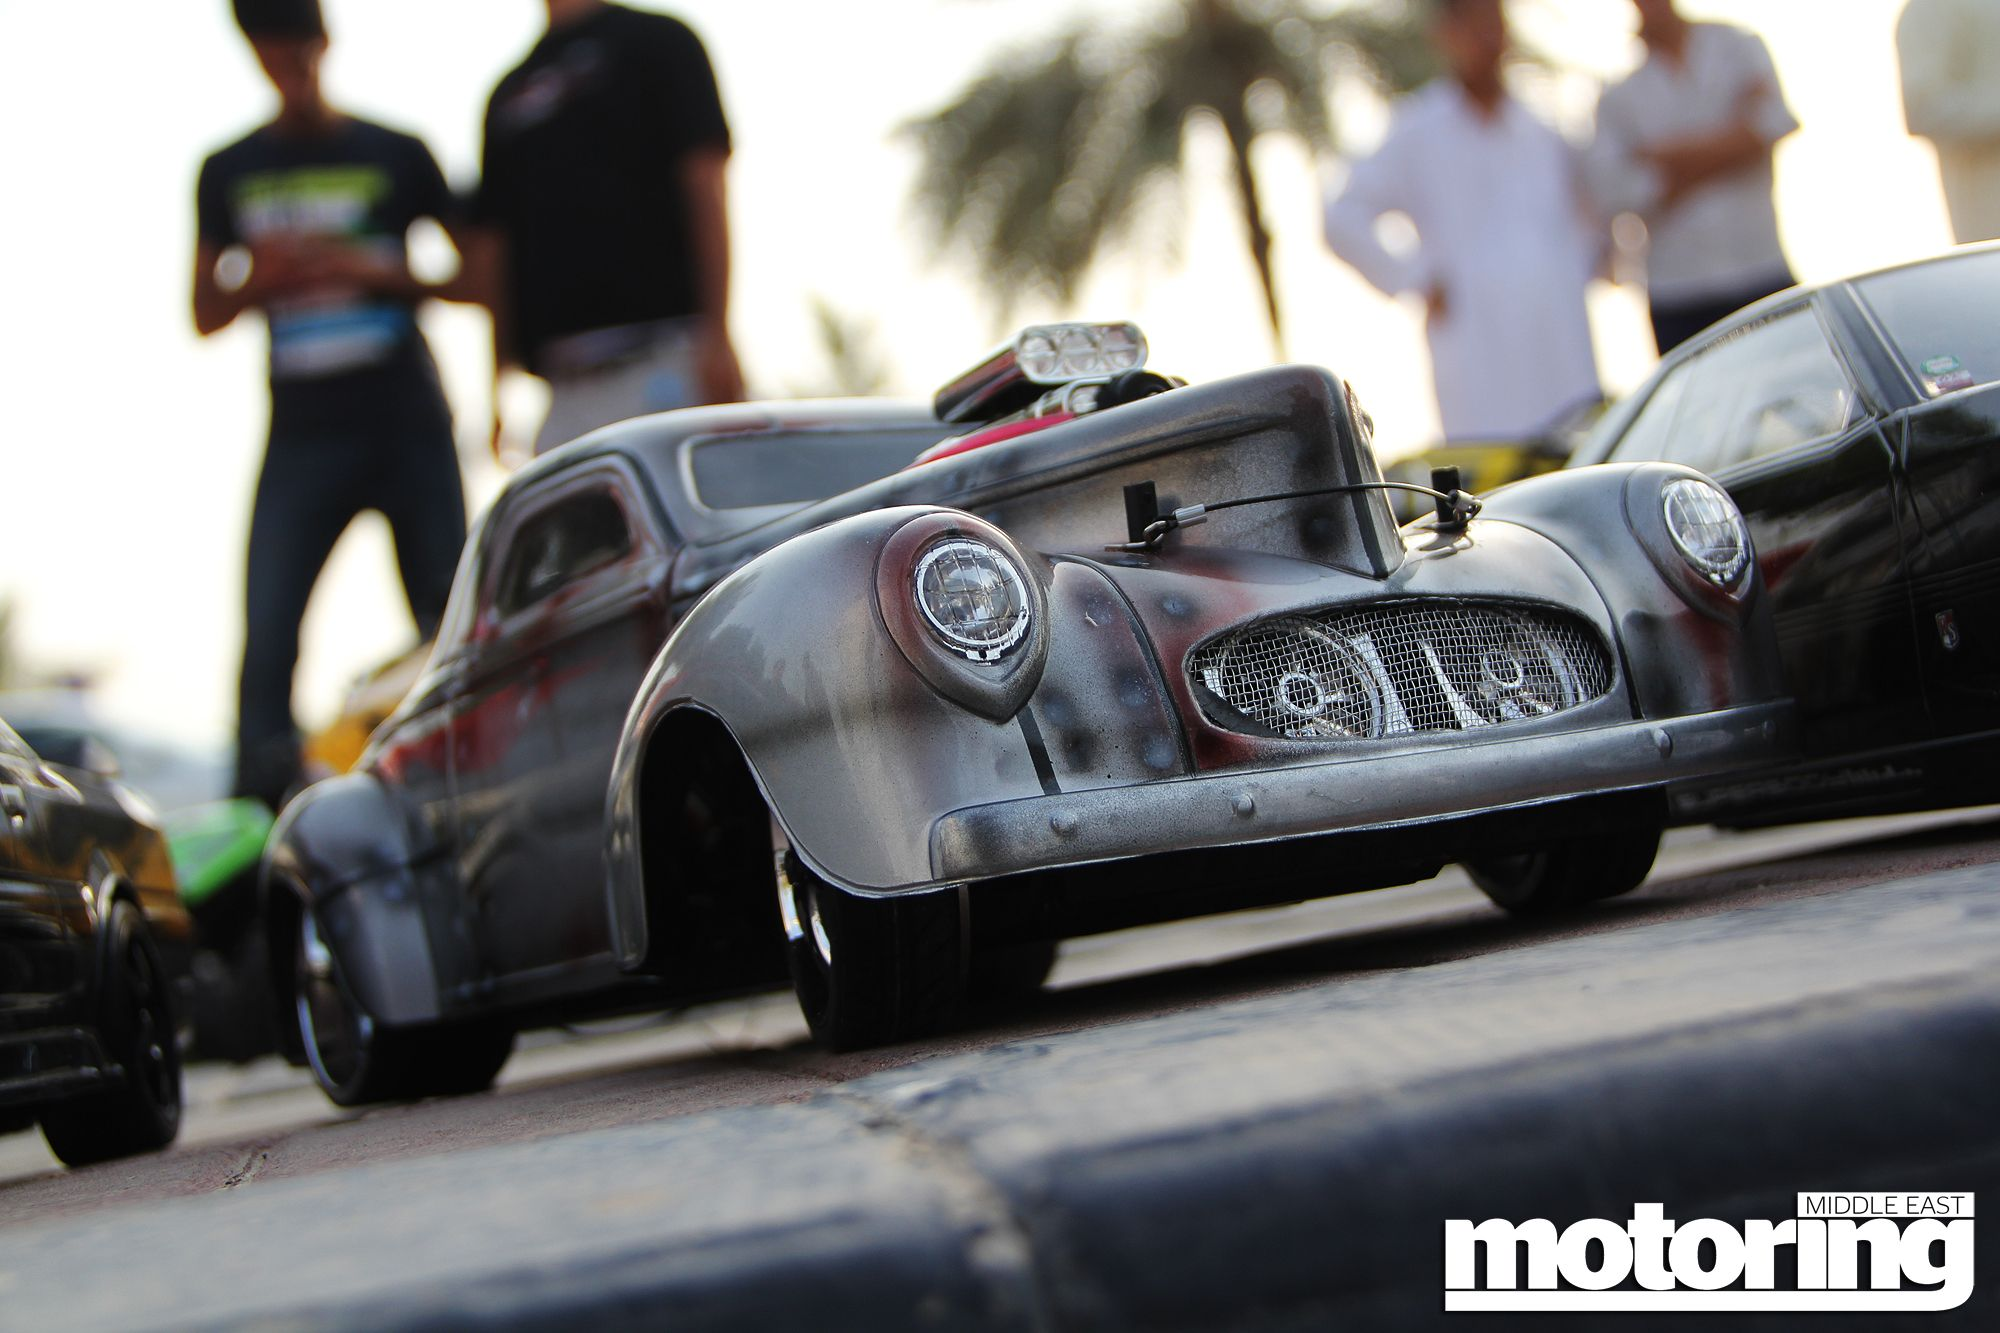 Modified Car Show And Compeion In Dubai Check Out Our